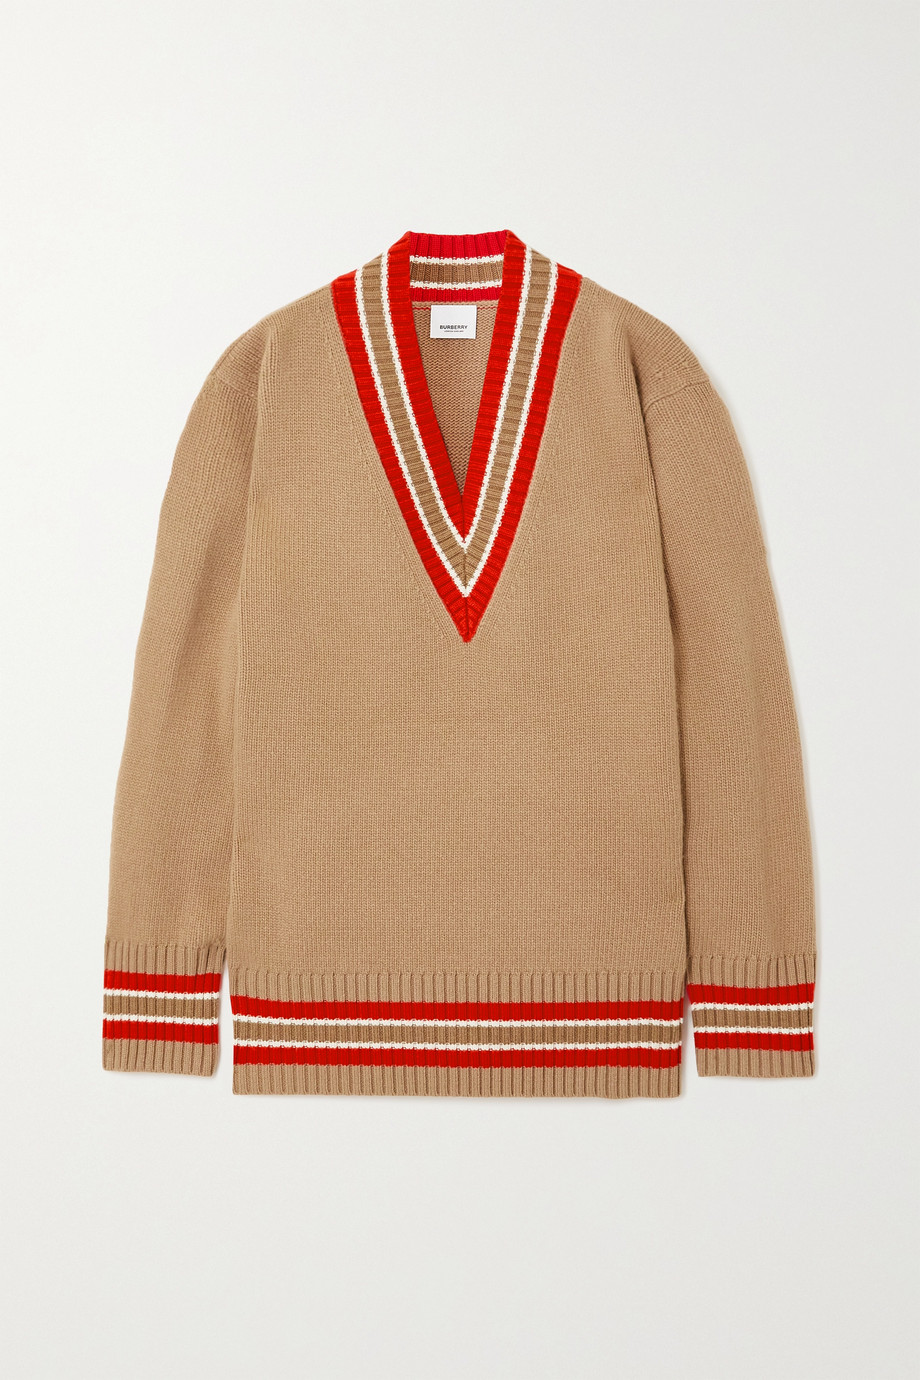 Burberry Oversized striped wool sweater